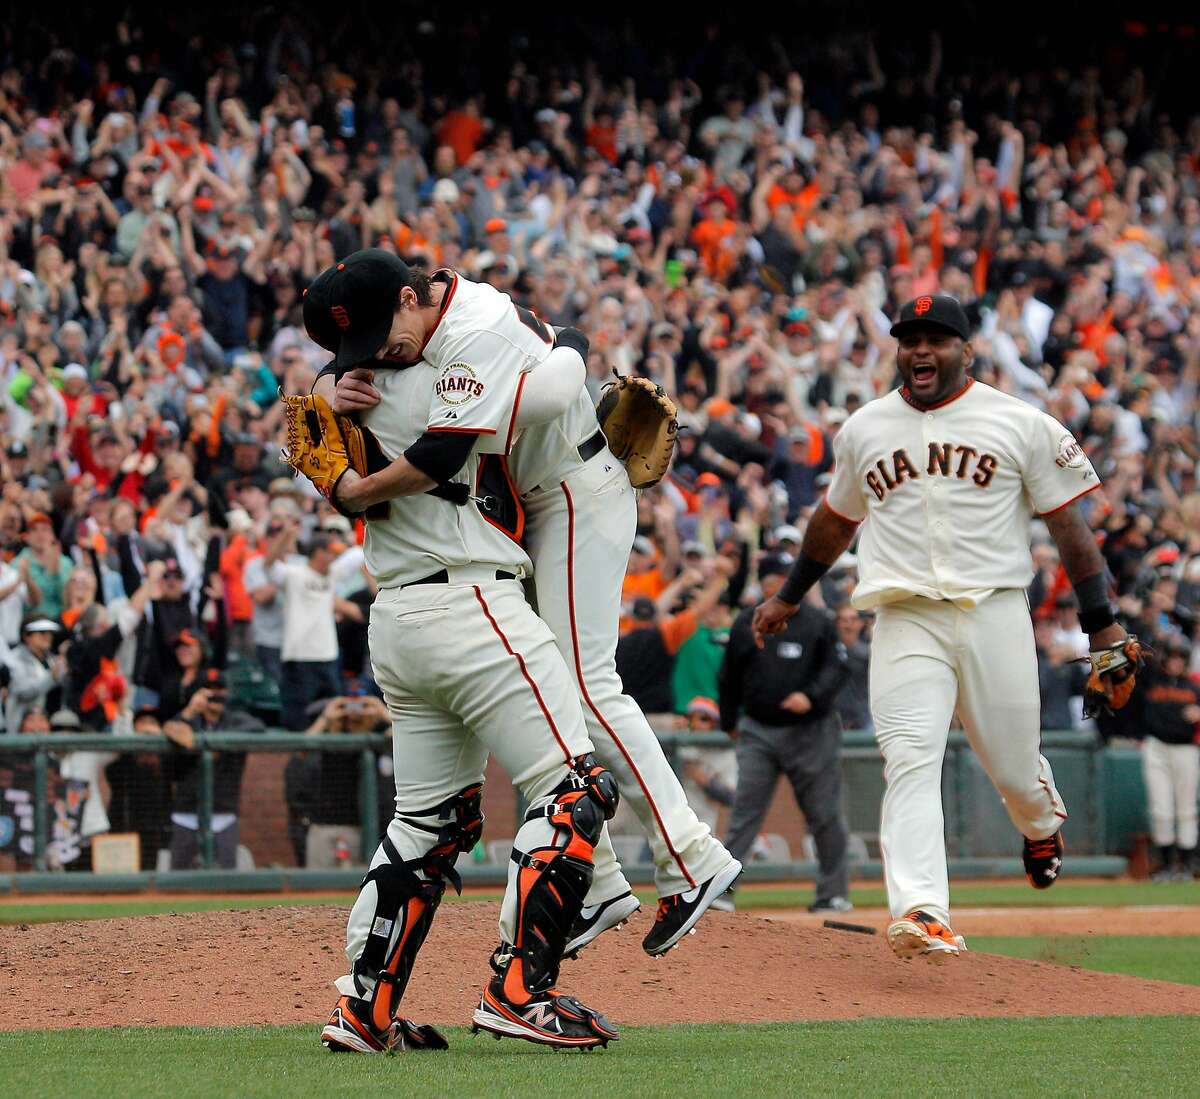 Pitcher Tim Lincecum, center, is mobbed by catcher Hector Sanchez, left, and third baseman Pablo Sandoval after he pitched a no hitter as the San Francisco Giants played the San Diego Padres at AT&T Park in San Francisco, Calif., on Wednesday, June 25, 2014, defeating the Padres 4-0.